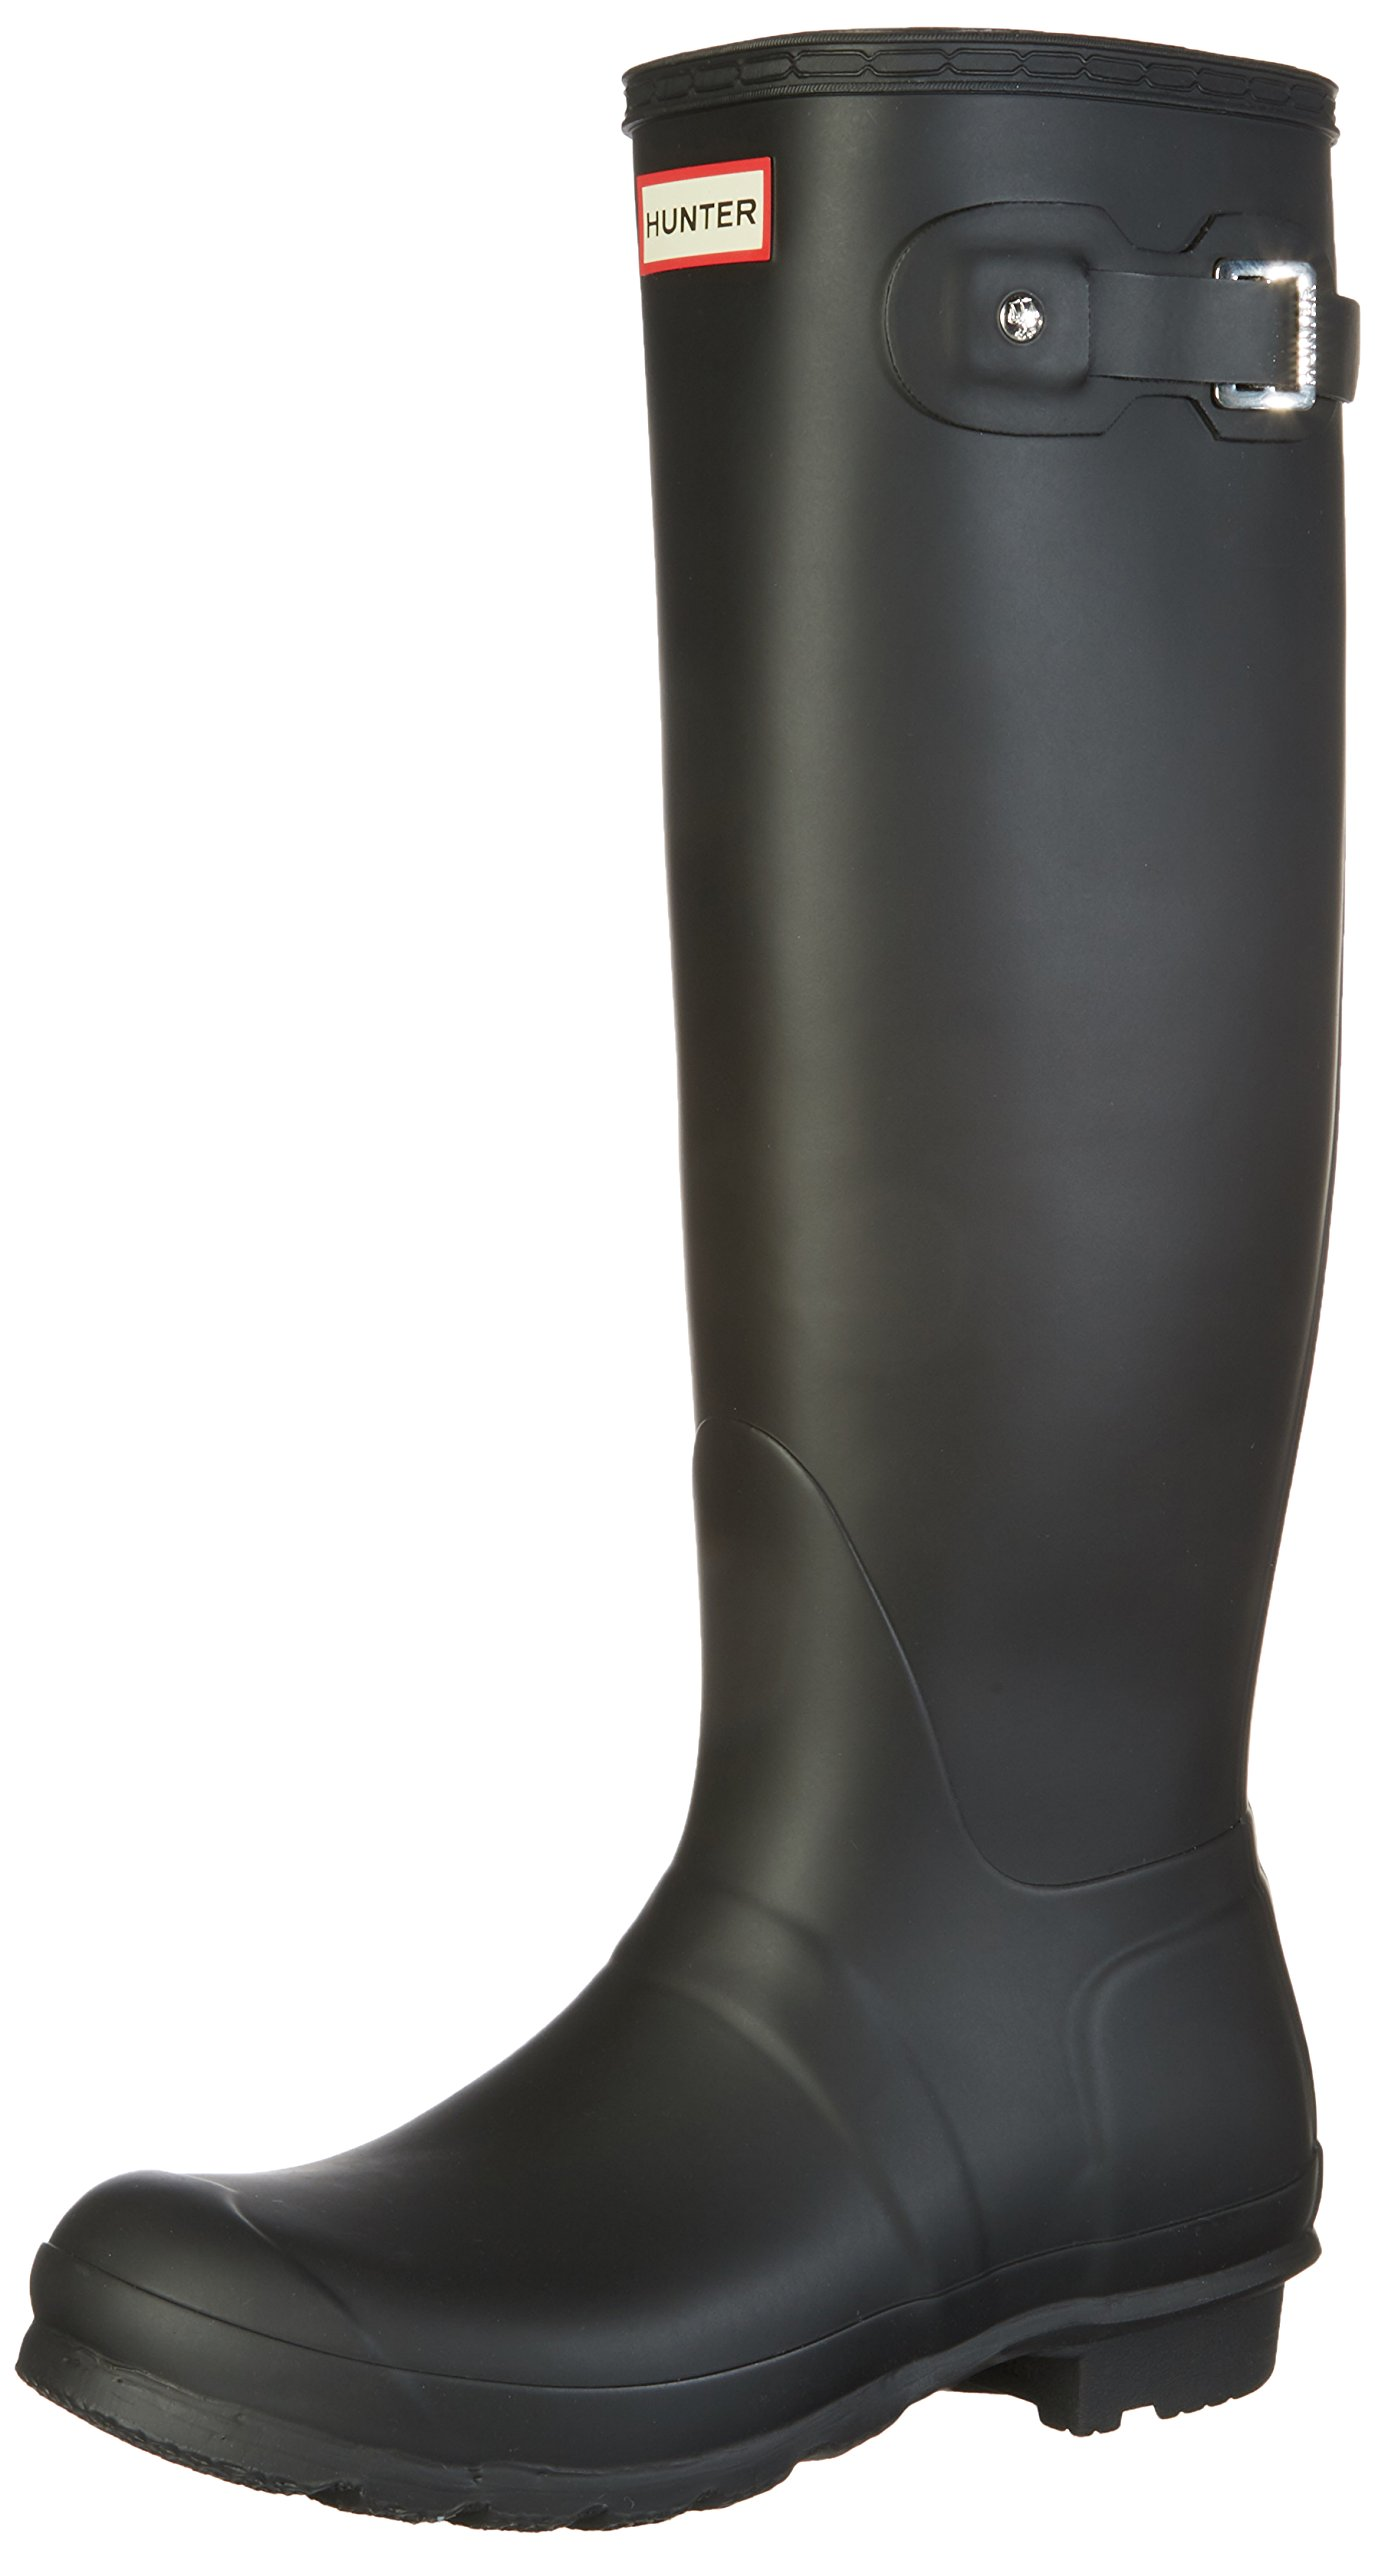 Hunter Women's Original Tall Black Rain Boots - 9 B(M) US by Hunter (Image #1)